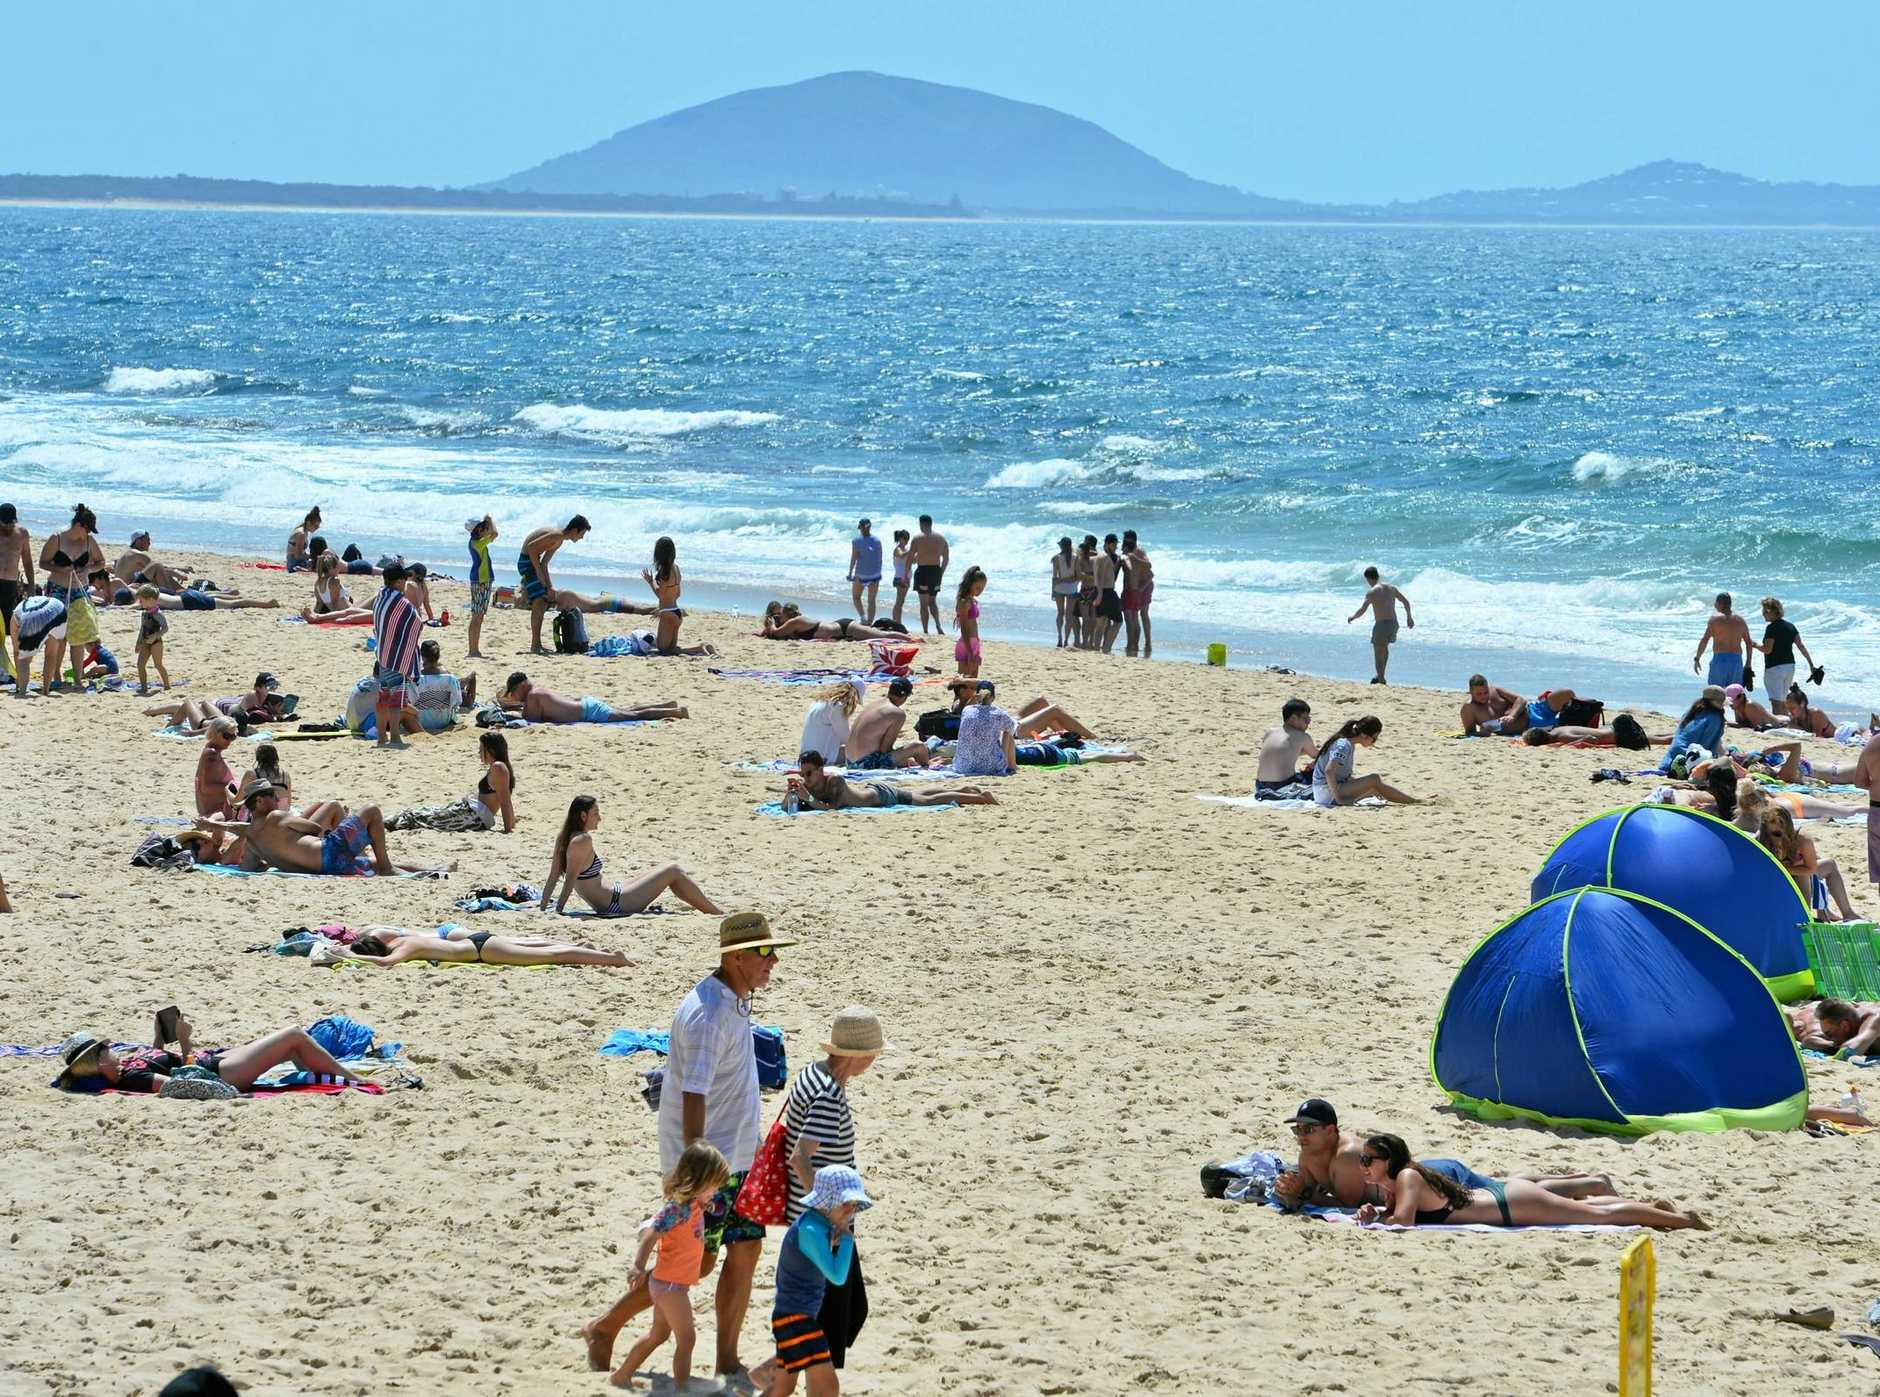 Sunshine Coast beaches will be packed for the remainder of the school holidays and heatwave conditions set to reach new peaks by Thursday.